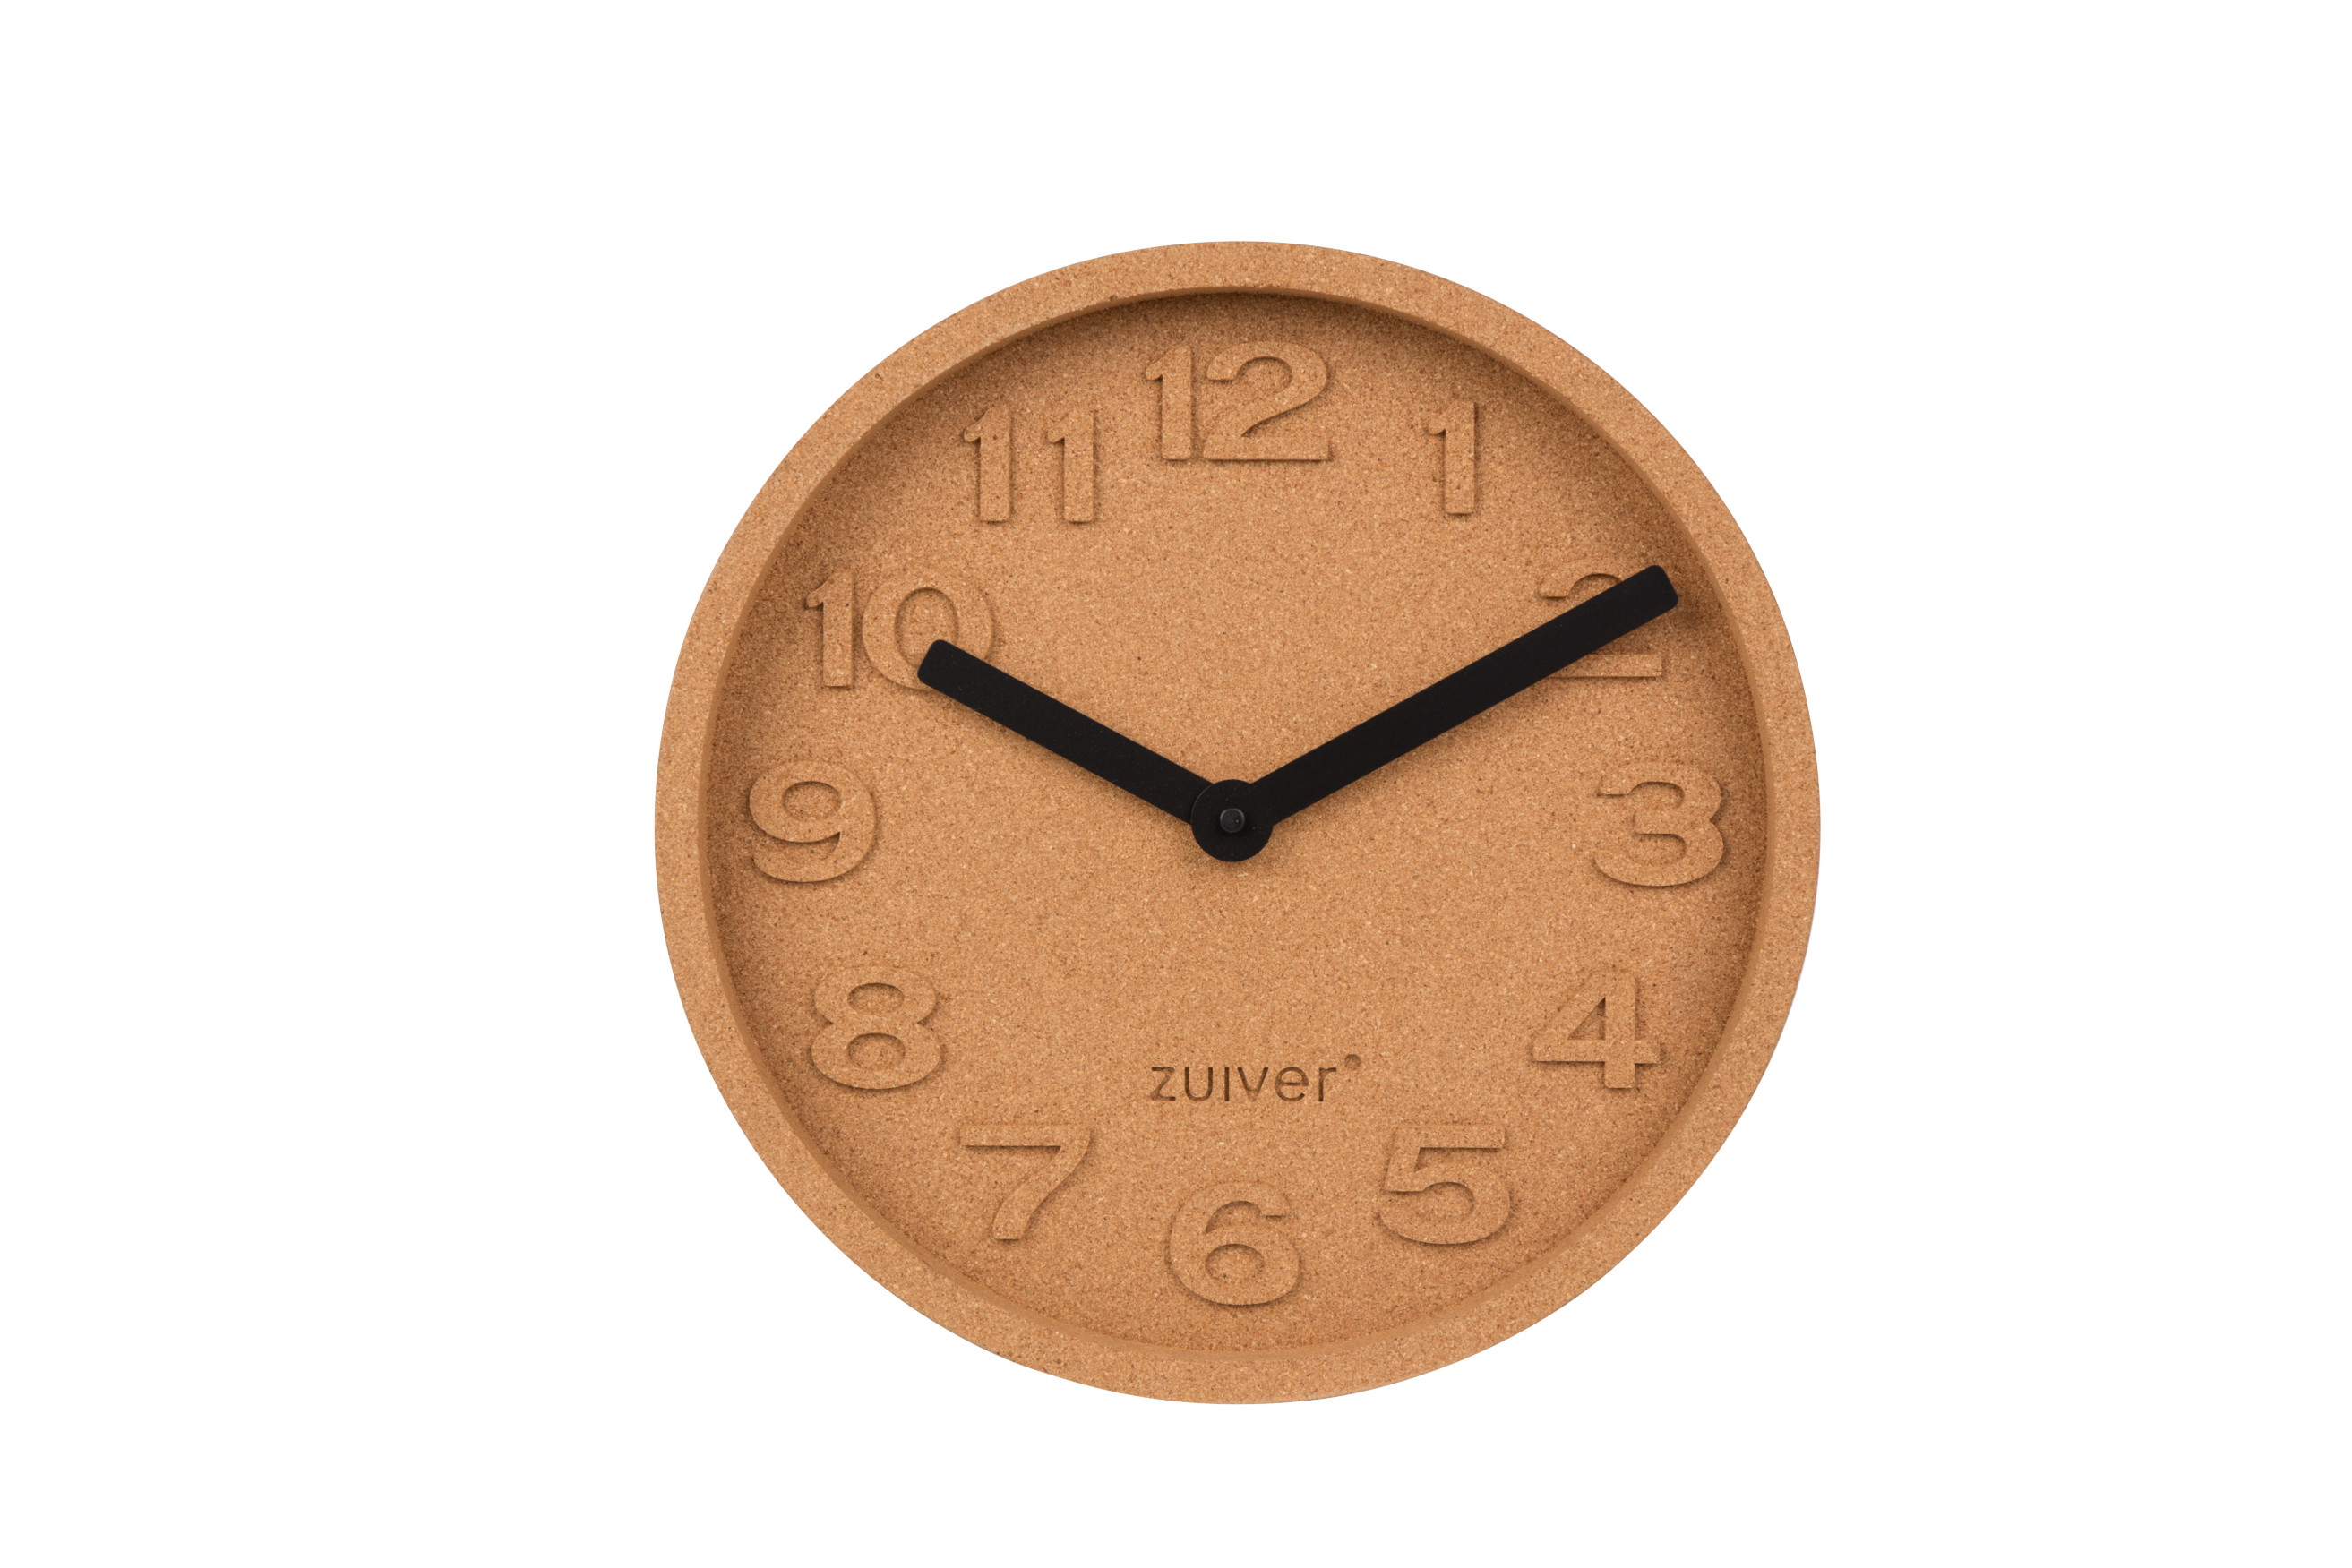 Zuiver cork clock with moulded numbers, £49 at Cuckooland